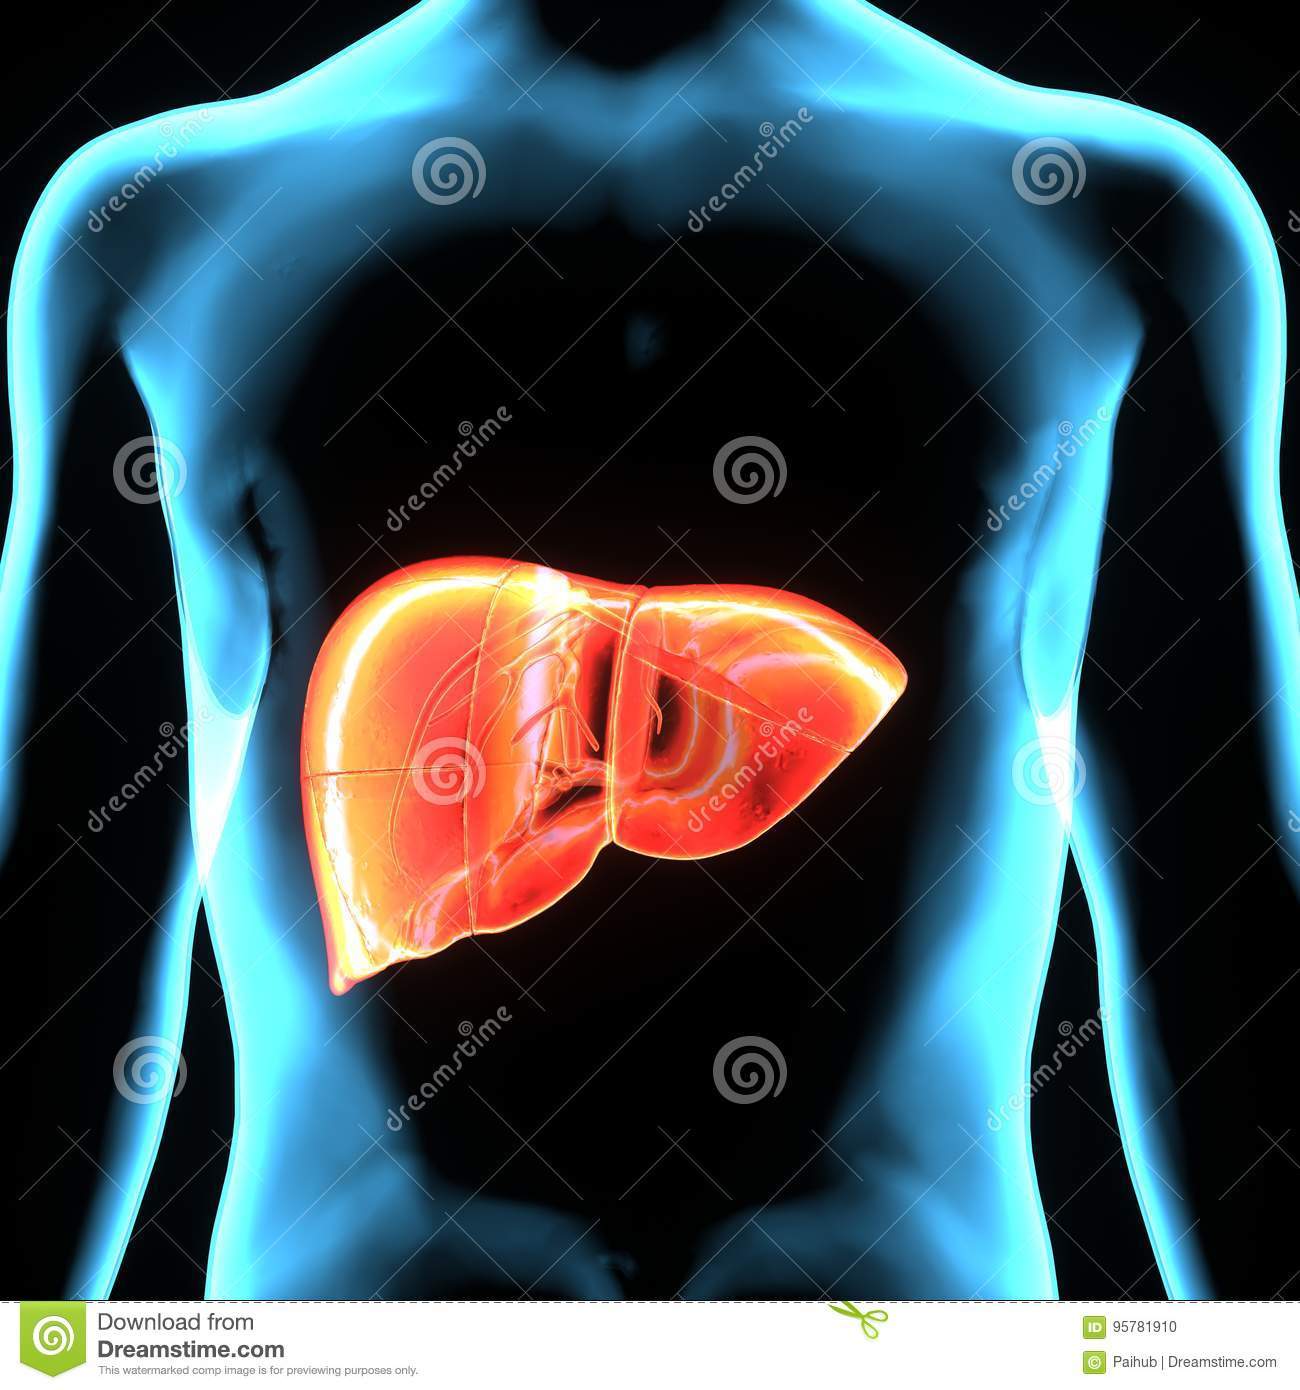 3d Illustration Of Human Digestive System Anatomy X28stomach With